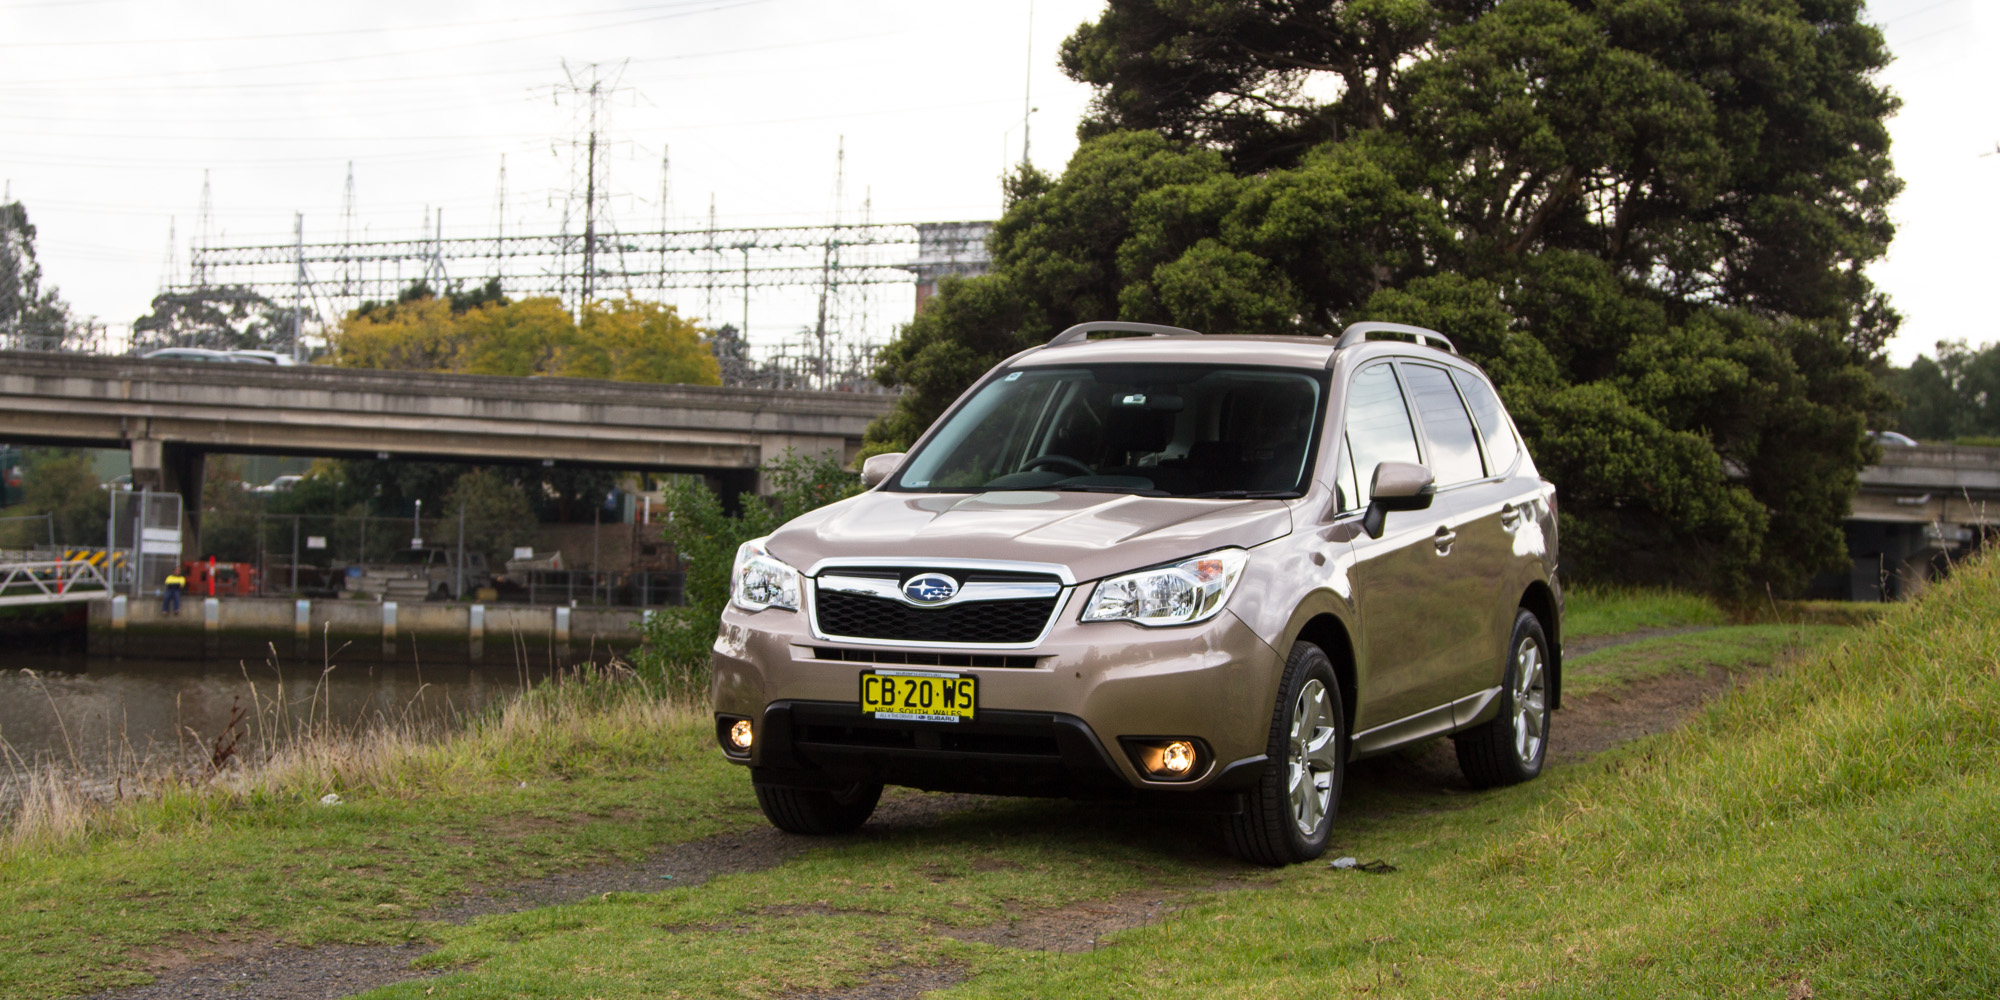 2015 Subaru Forester Review : 2 0D-L diesel CVT | CarAdvice